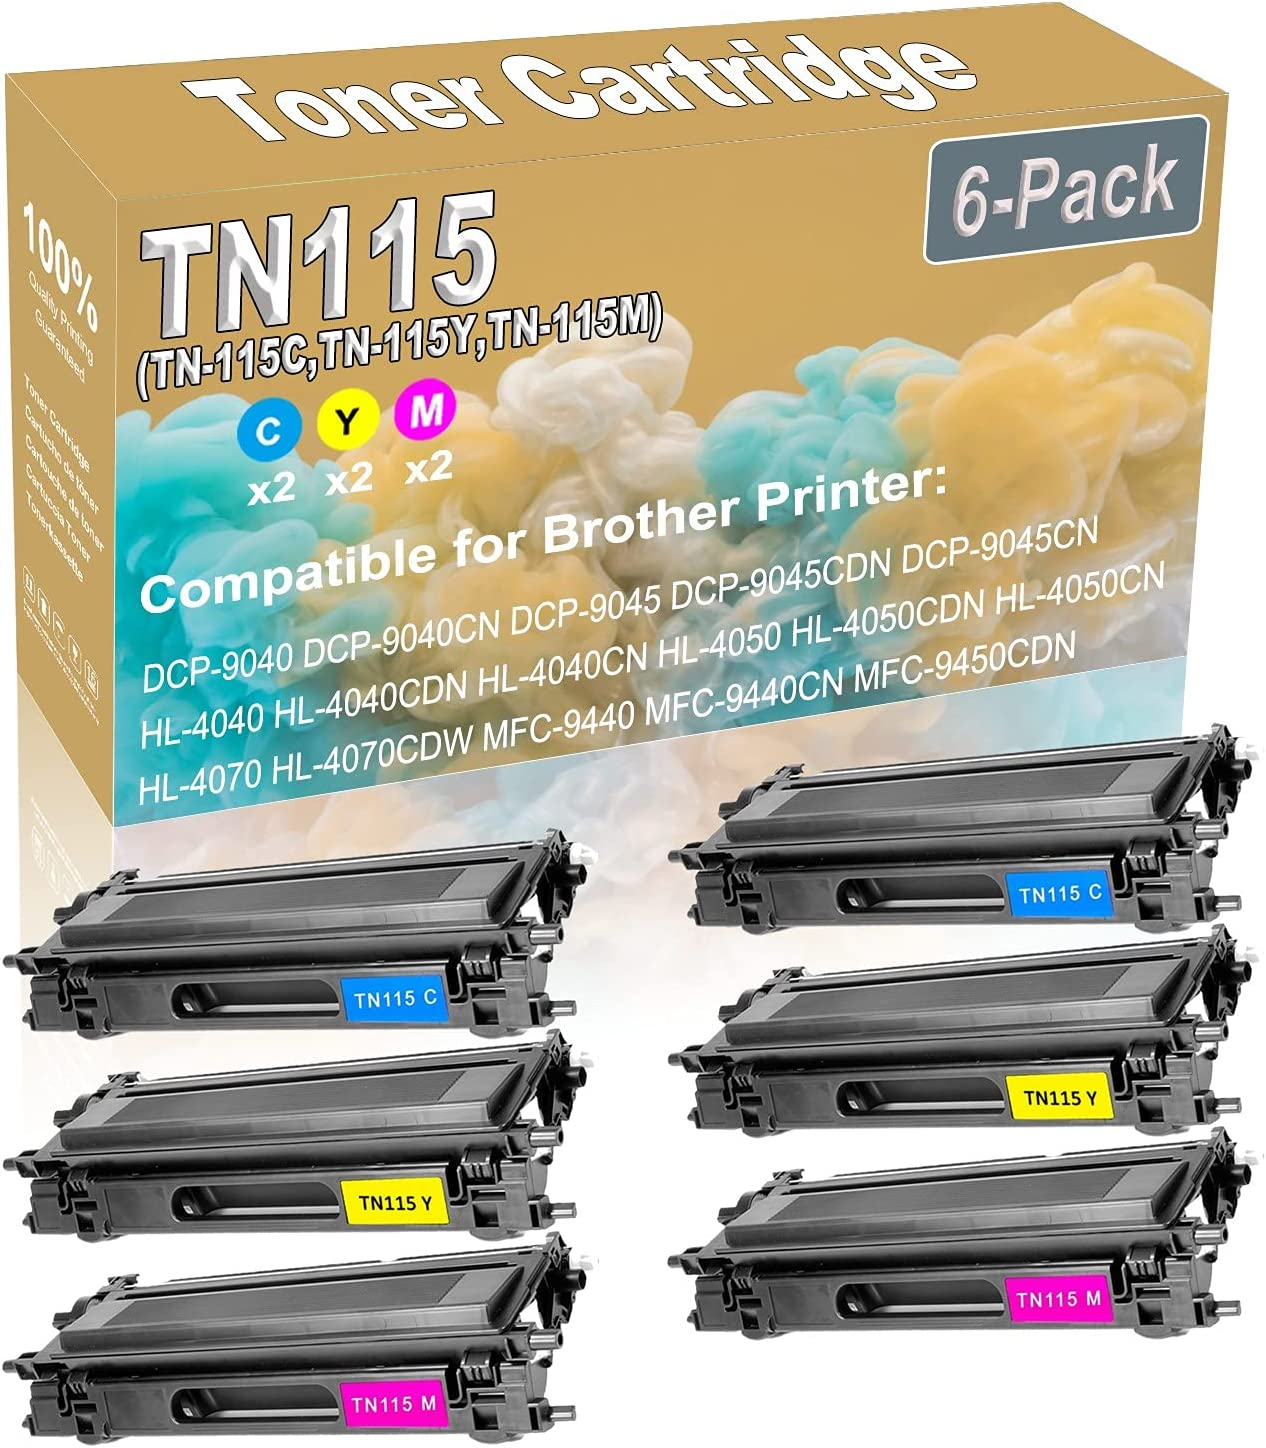 6-Pack 2C+2Y+2M Award-winning store Compatible DCP-9040 DCP-9045 4040CDN HL-4040 New product!!